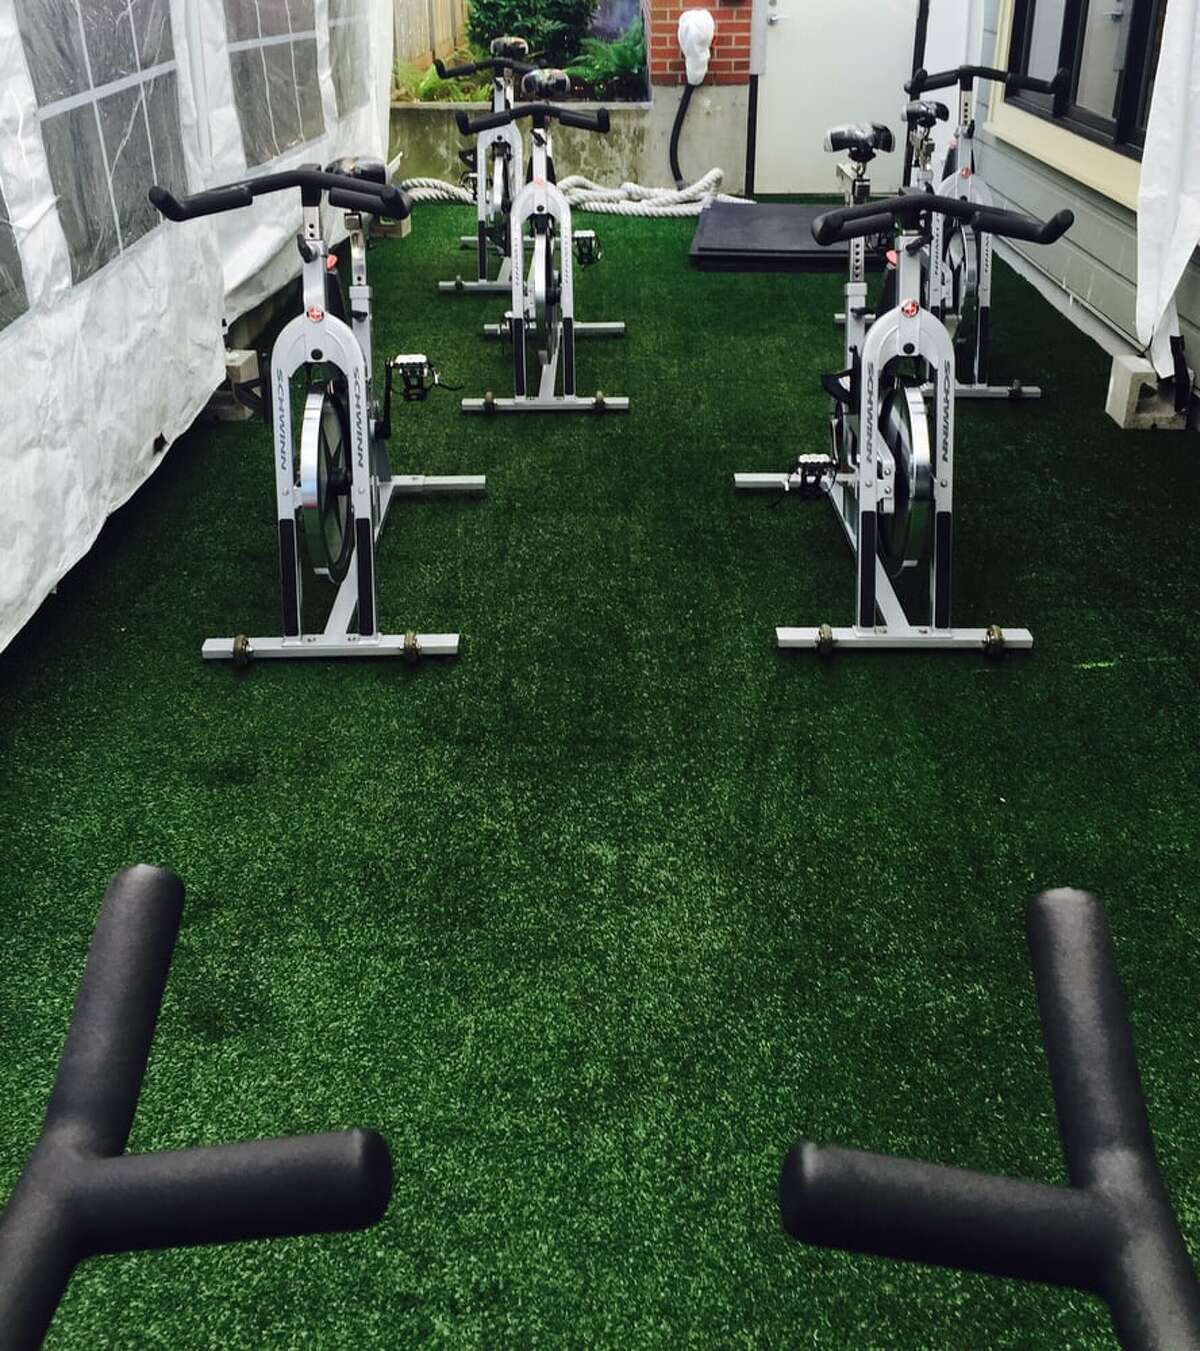 14. Ridge Fitness is described by reviewers as a fantastic little local gym.